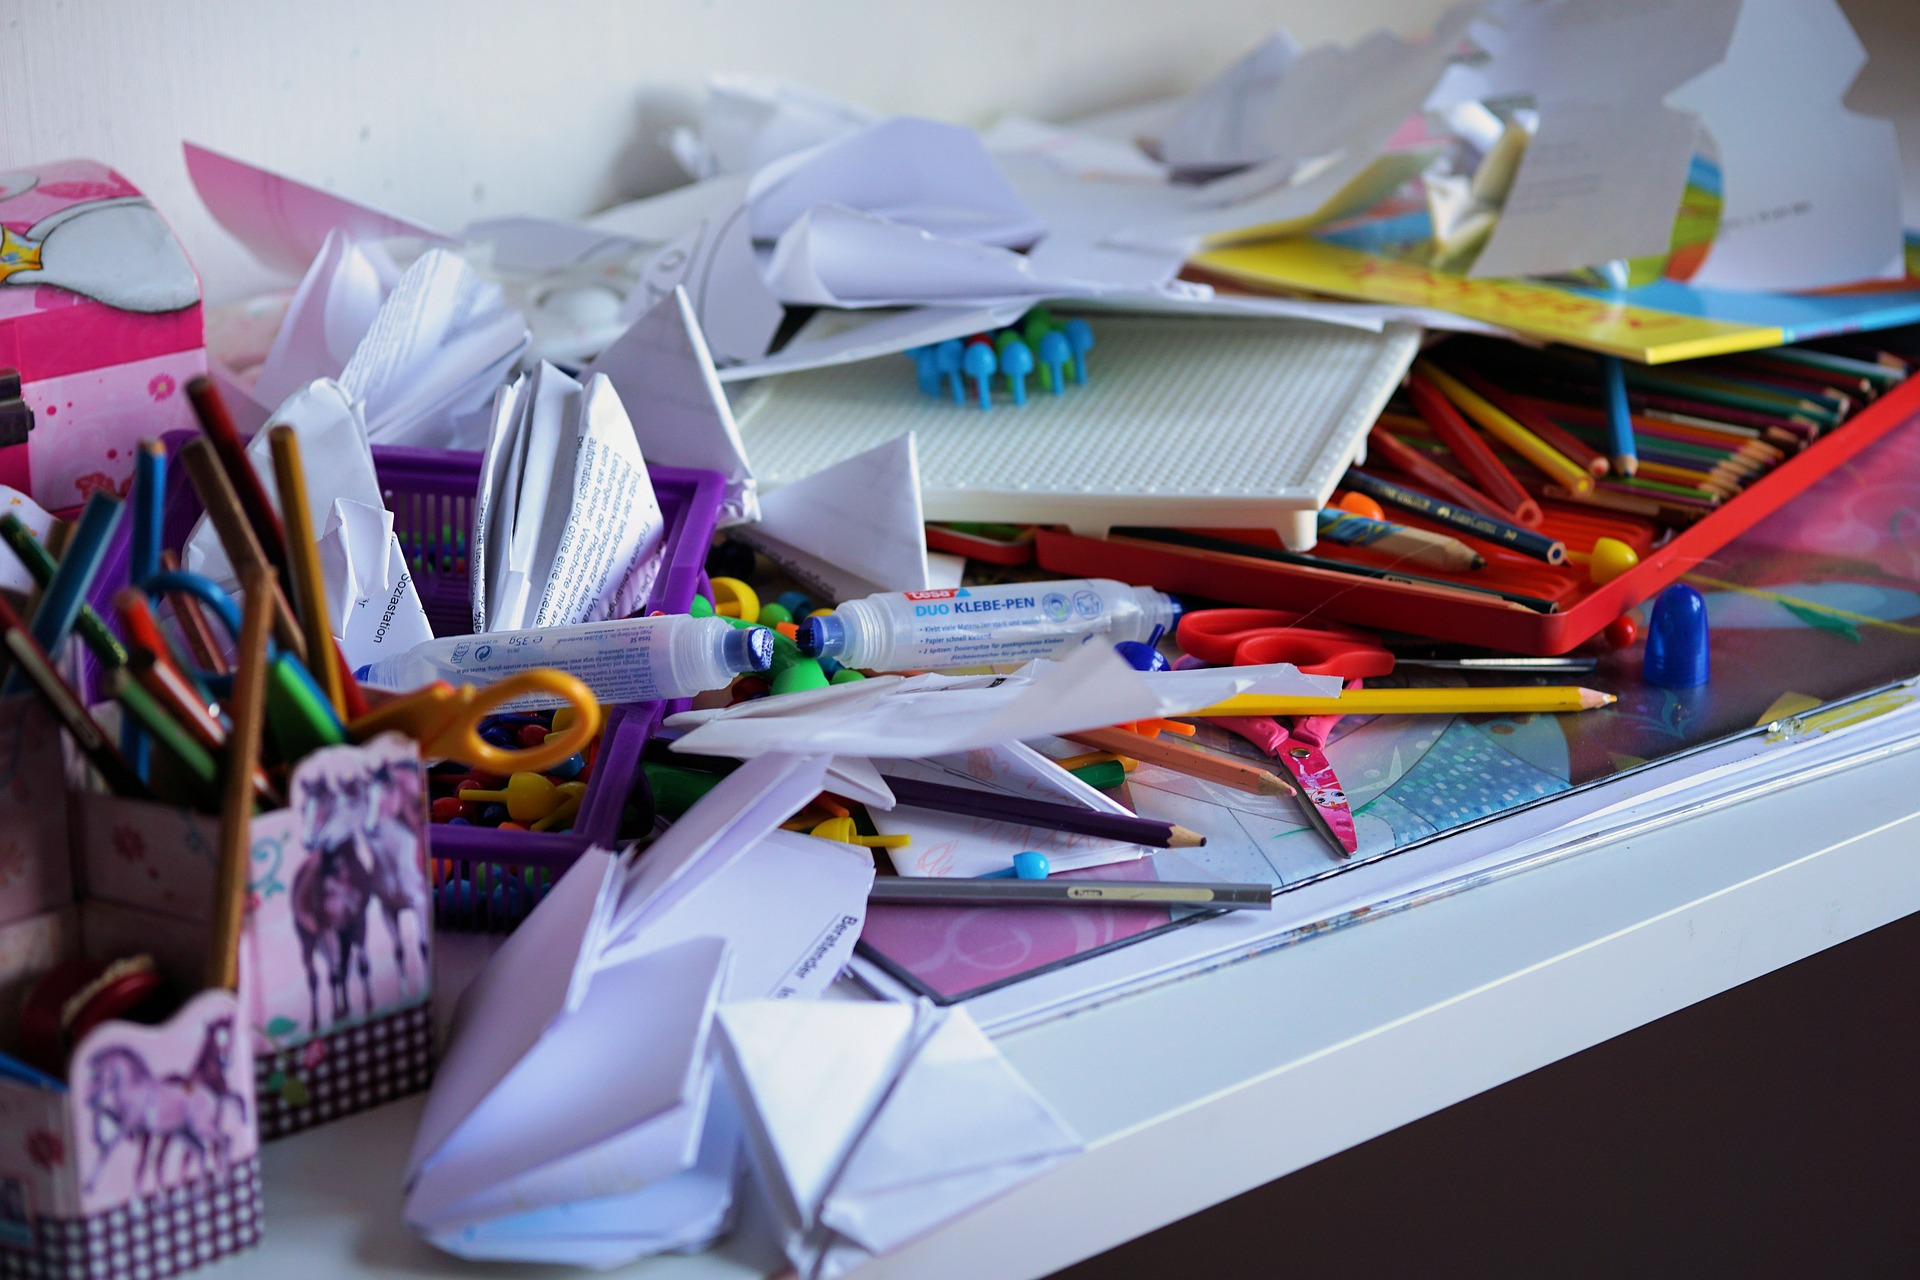 Papers and craft supplies cluttering the top of a white desk.